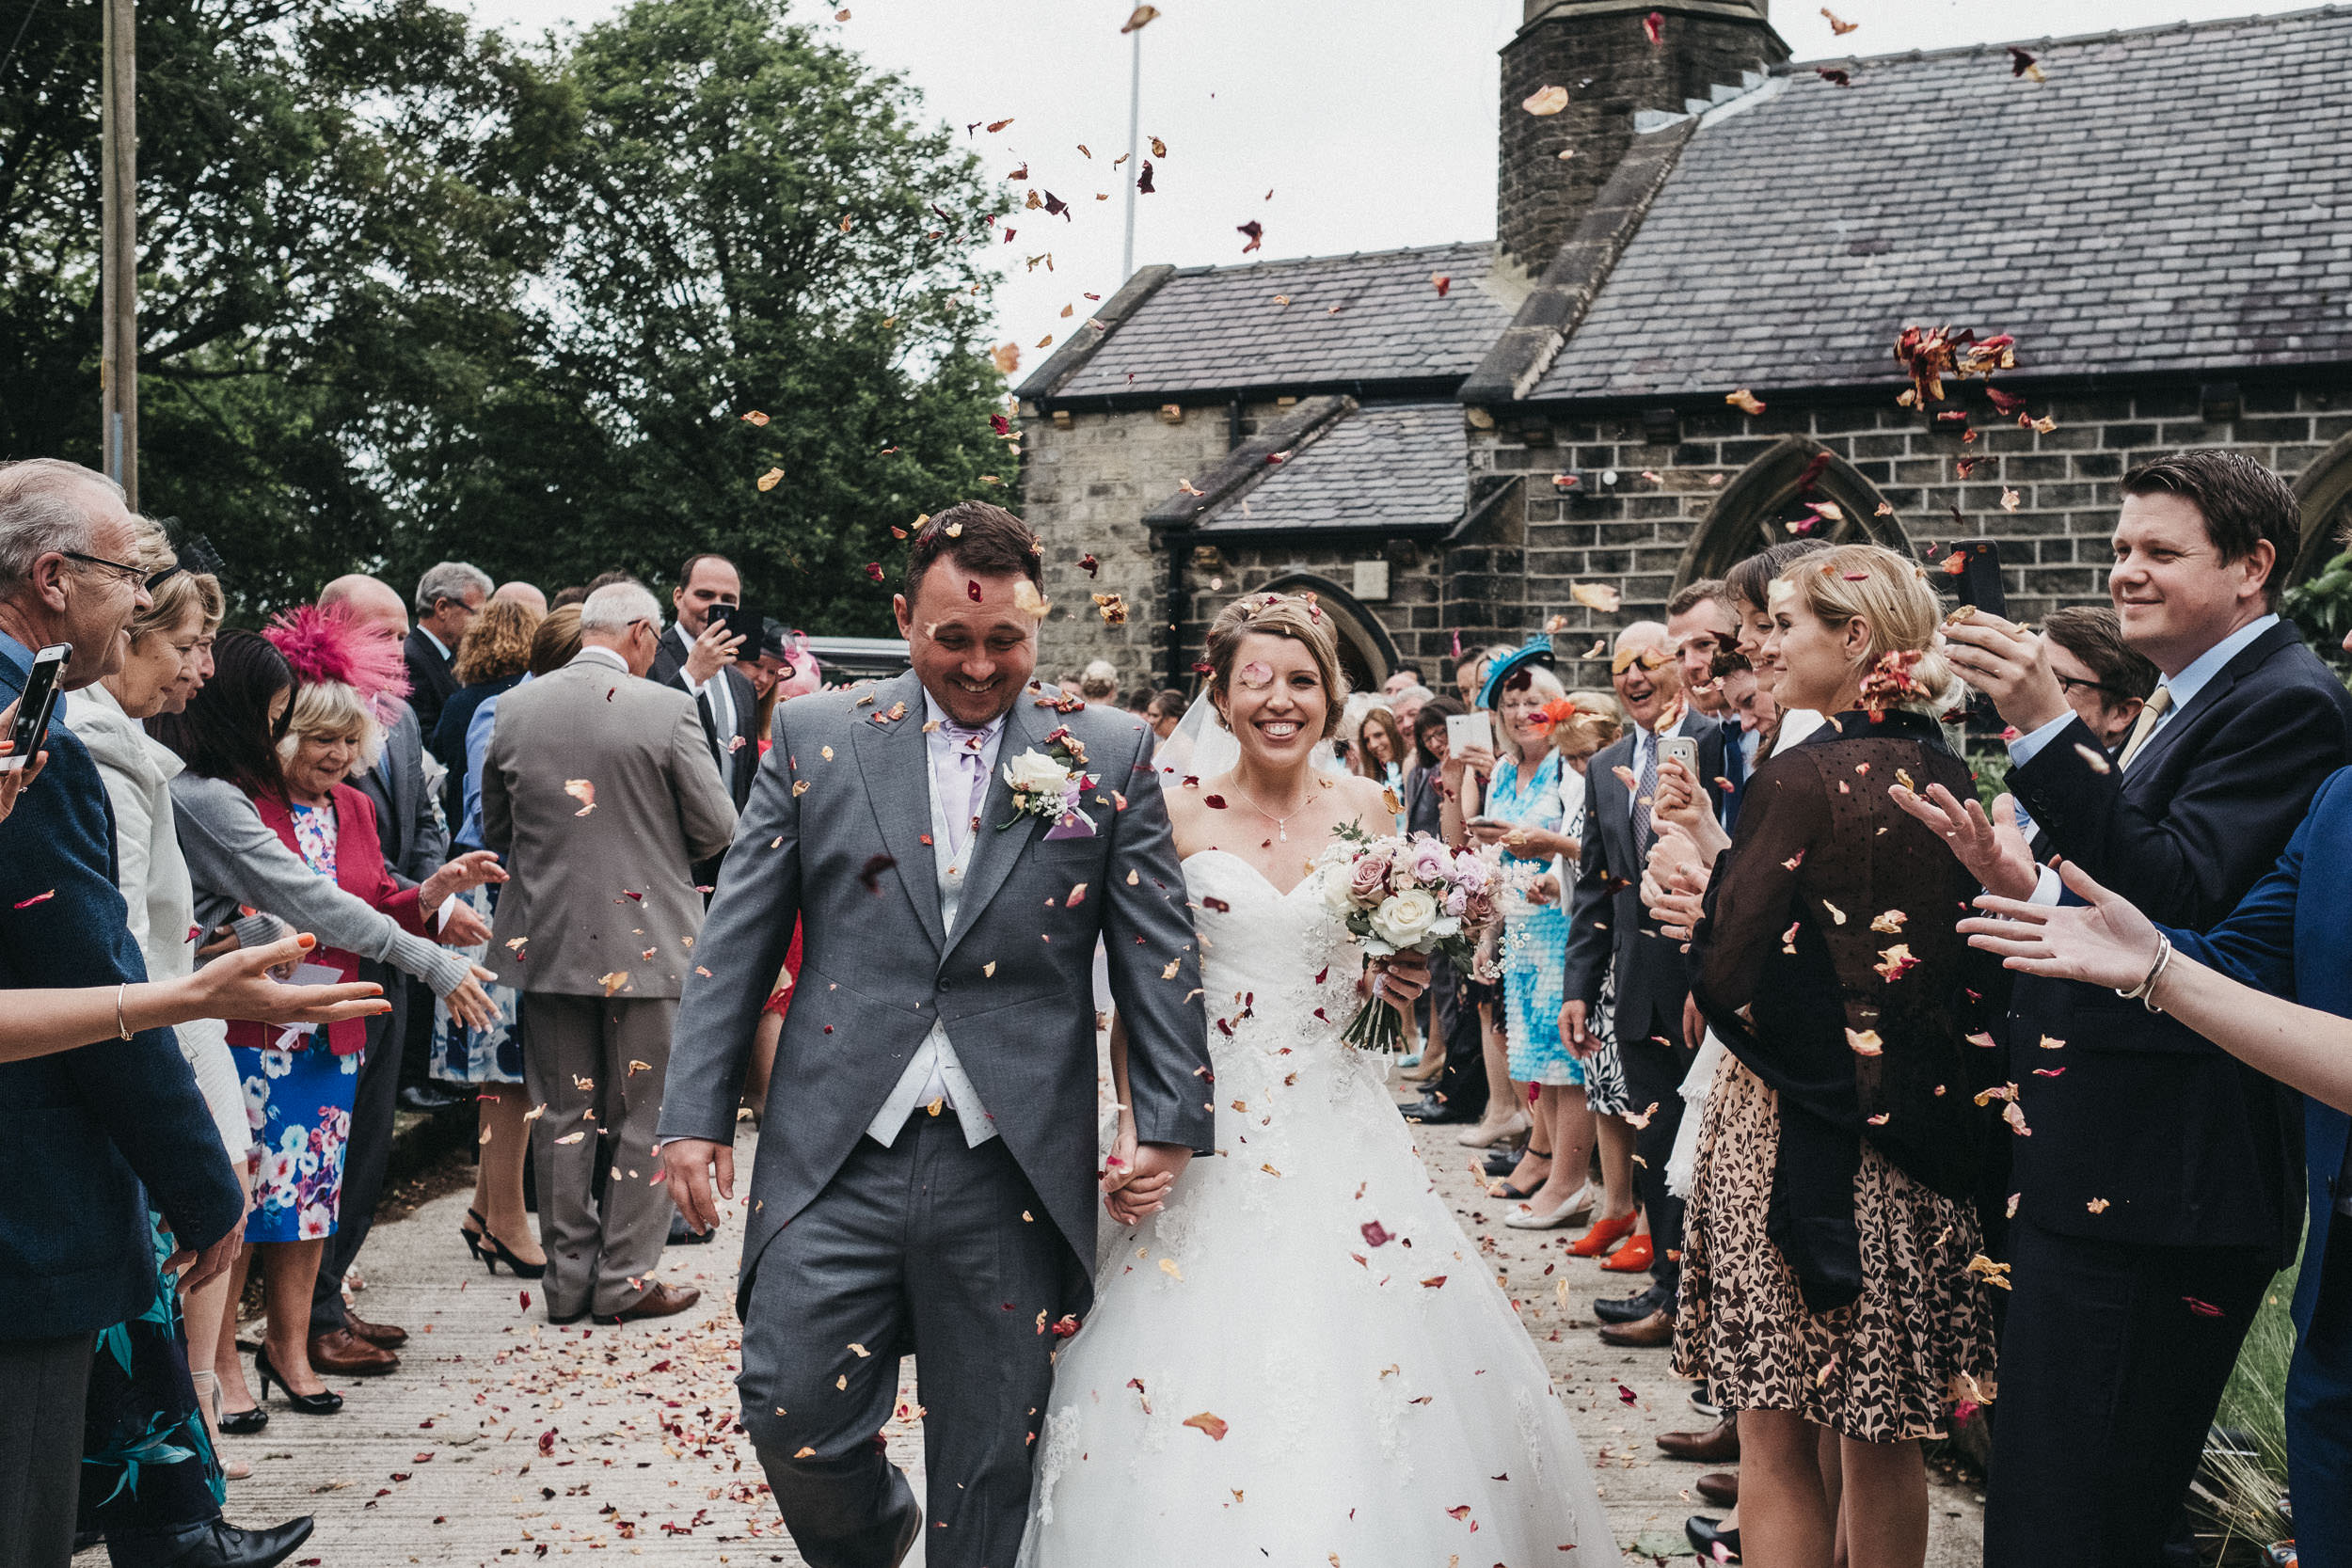 Bride and groom laughing as they are showered with confetti